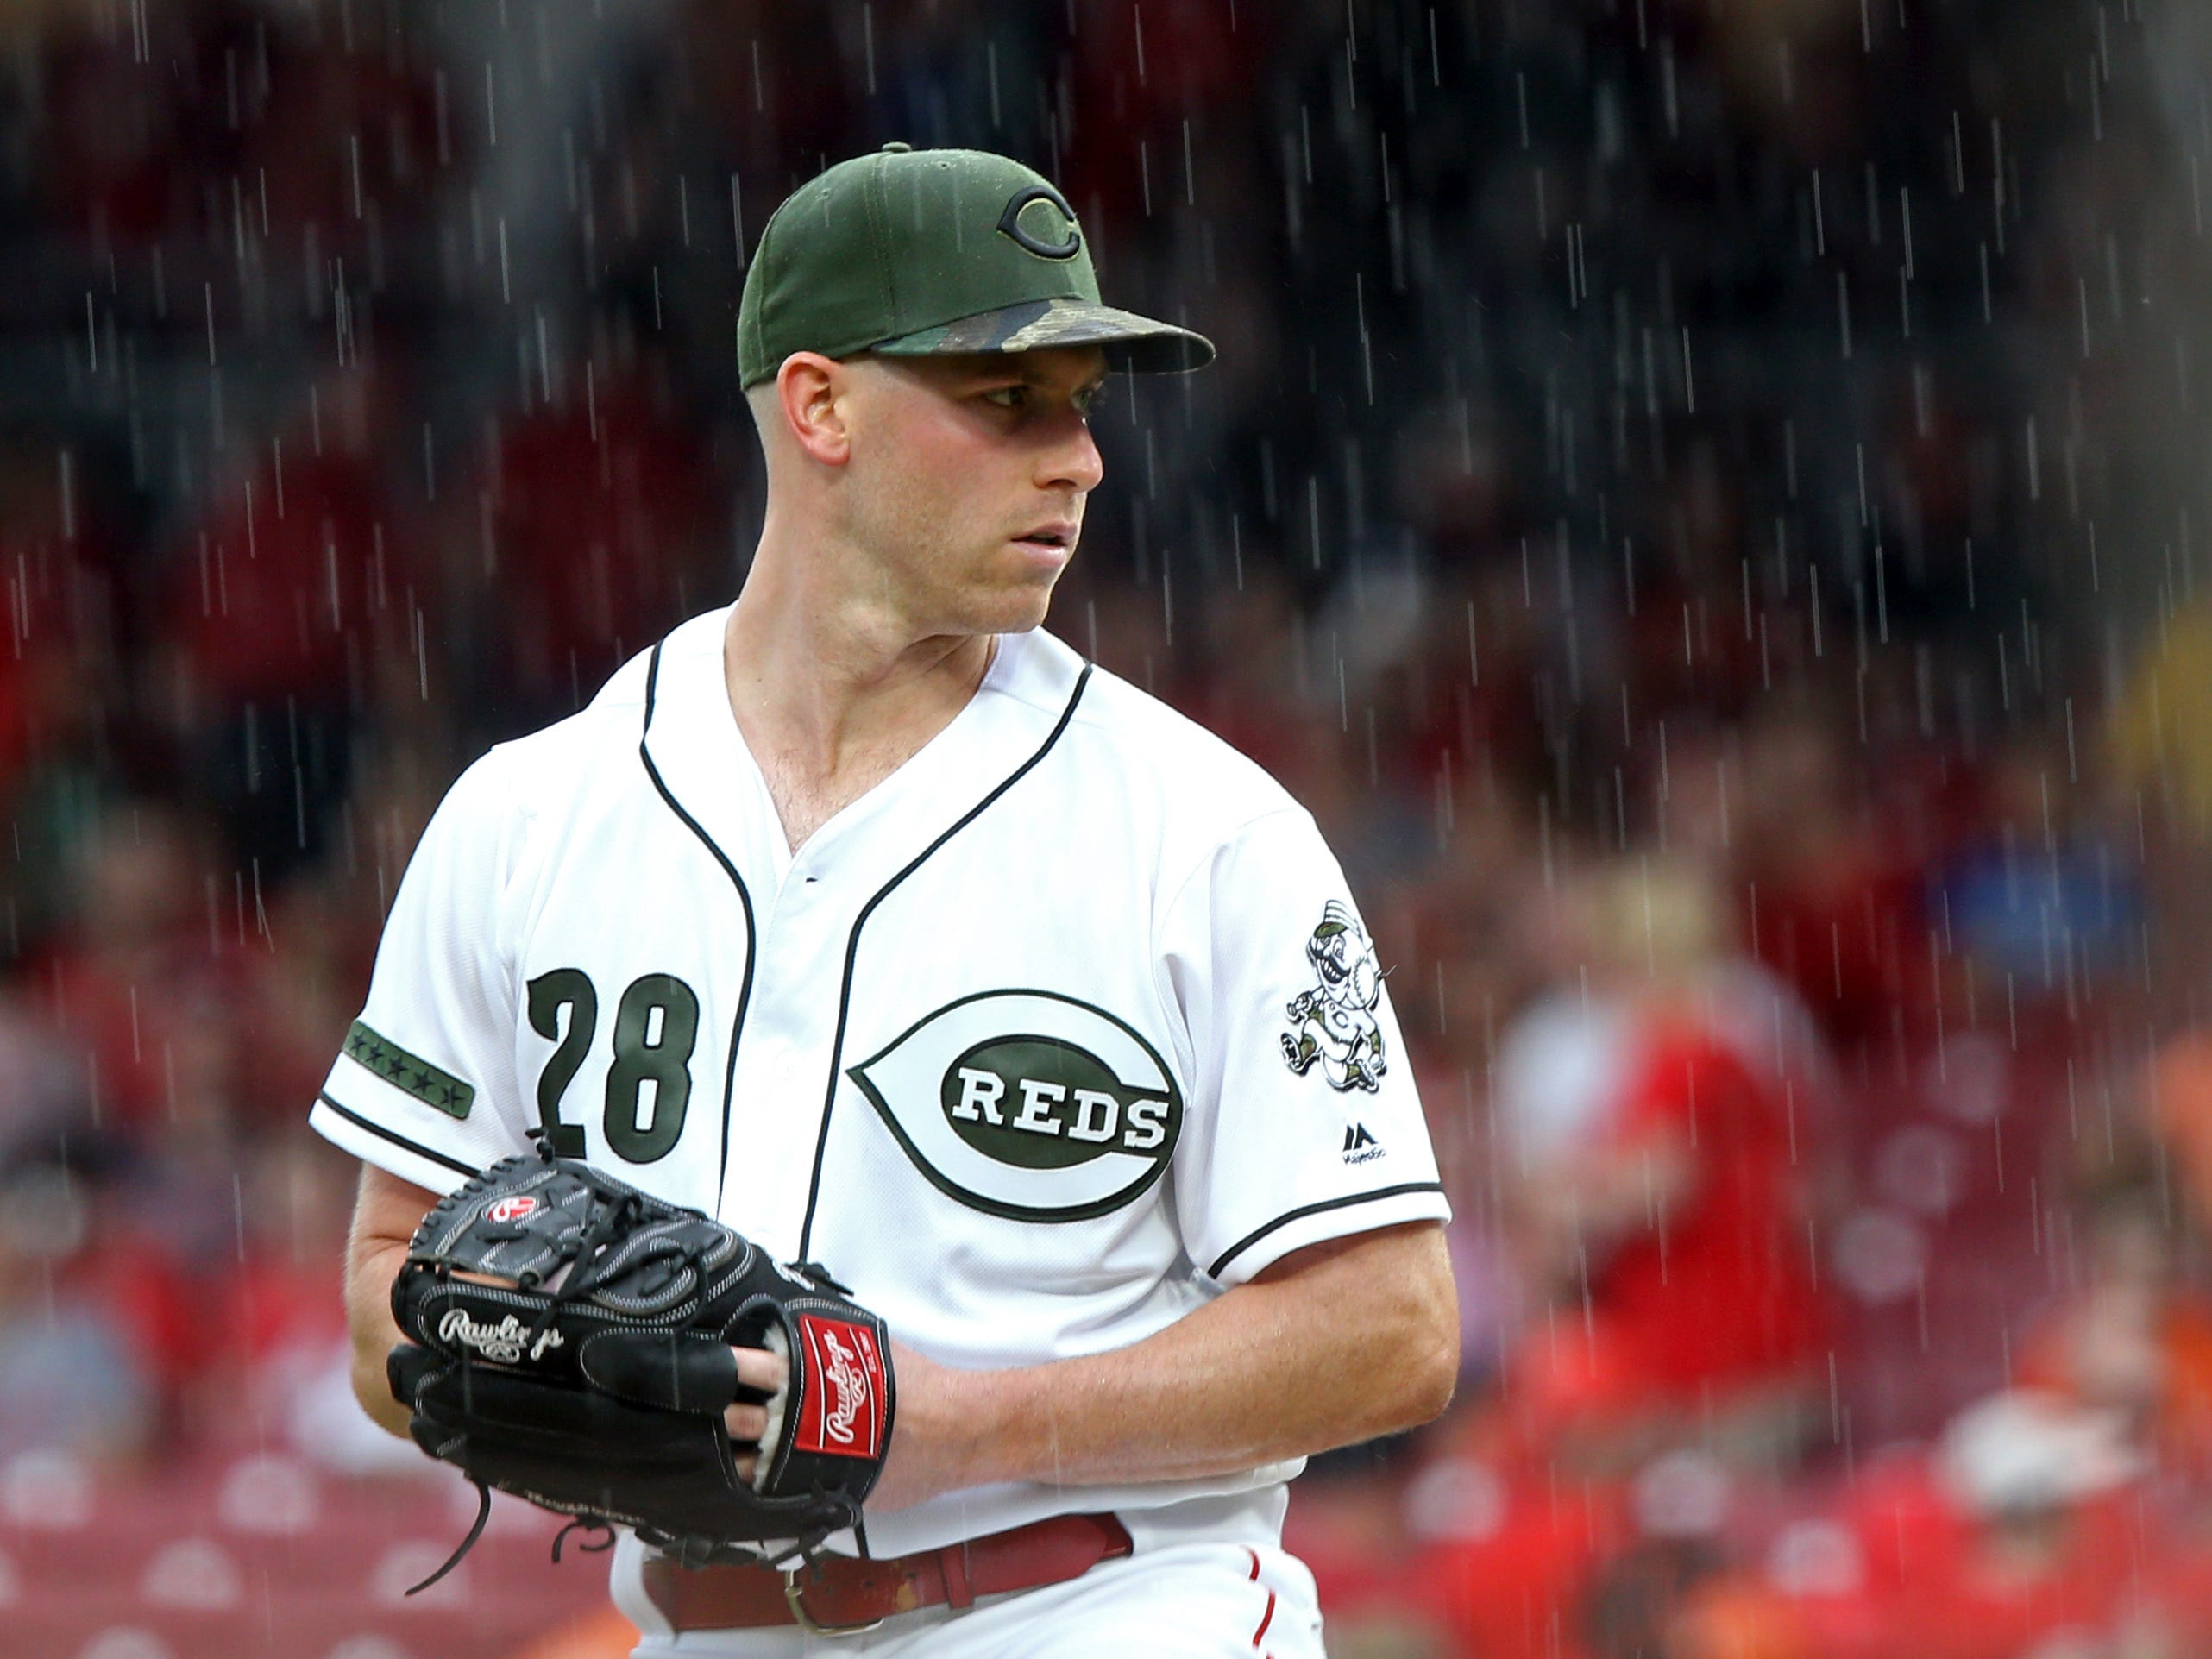 Aug 10, 2018; Cincinnati, OH, USA; Cincinnati Reds starting pitcher Anthony DeSclafani (28) prepares to throw as rain starts to fall during the game against the Arizona Diamondbacks in the second inning at Great American Ball Park.